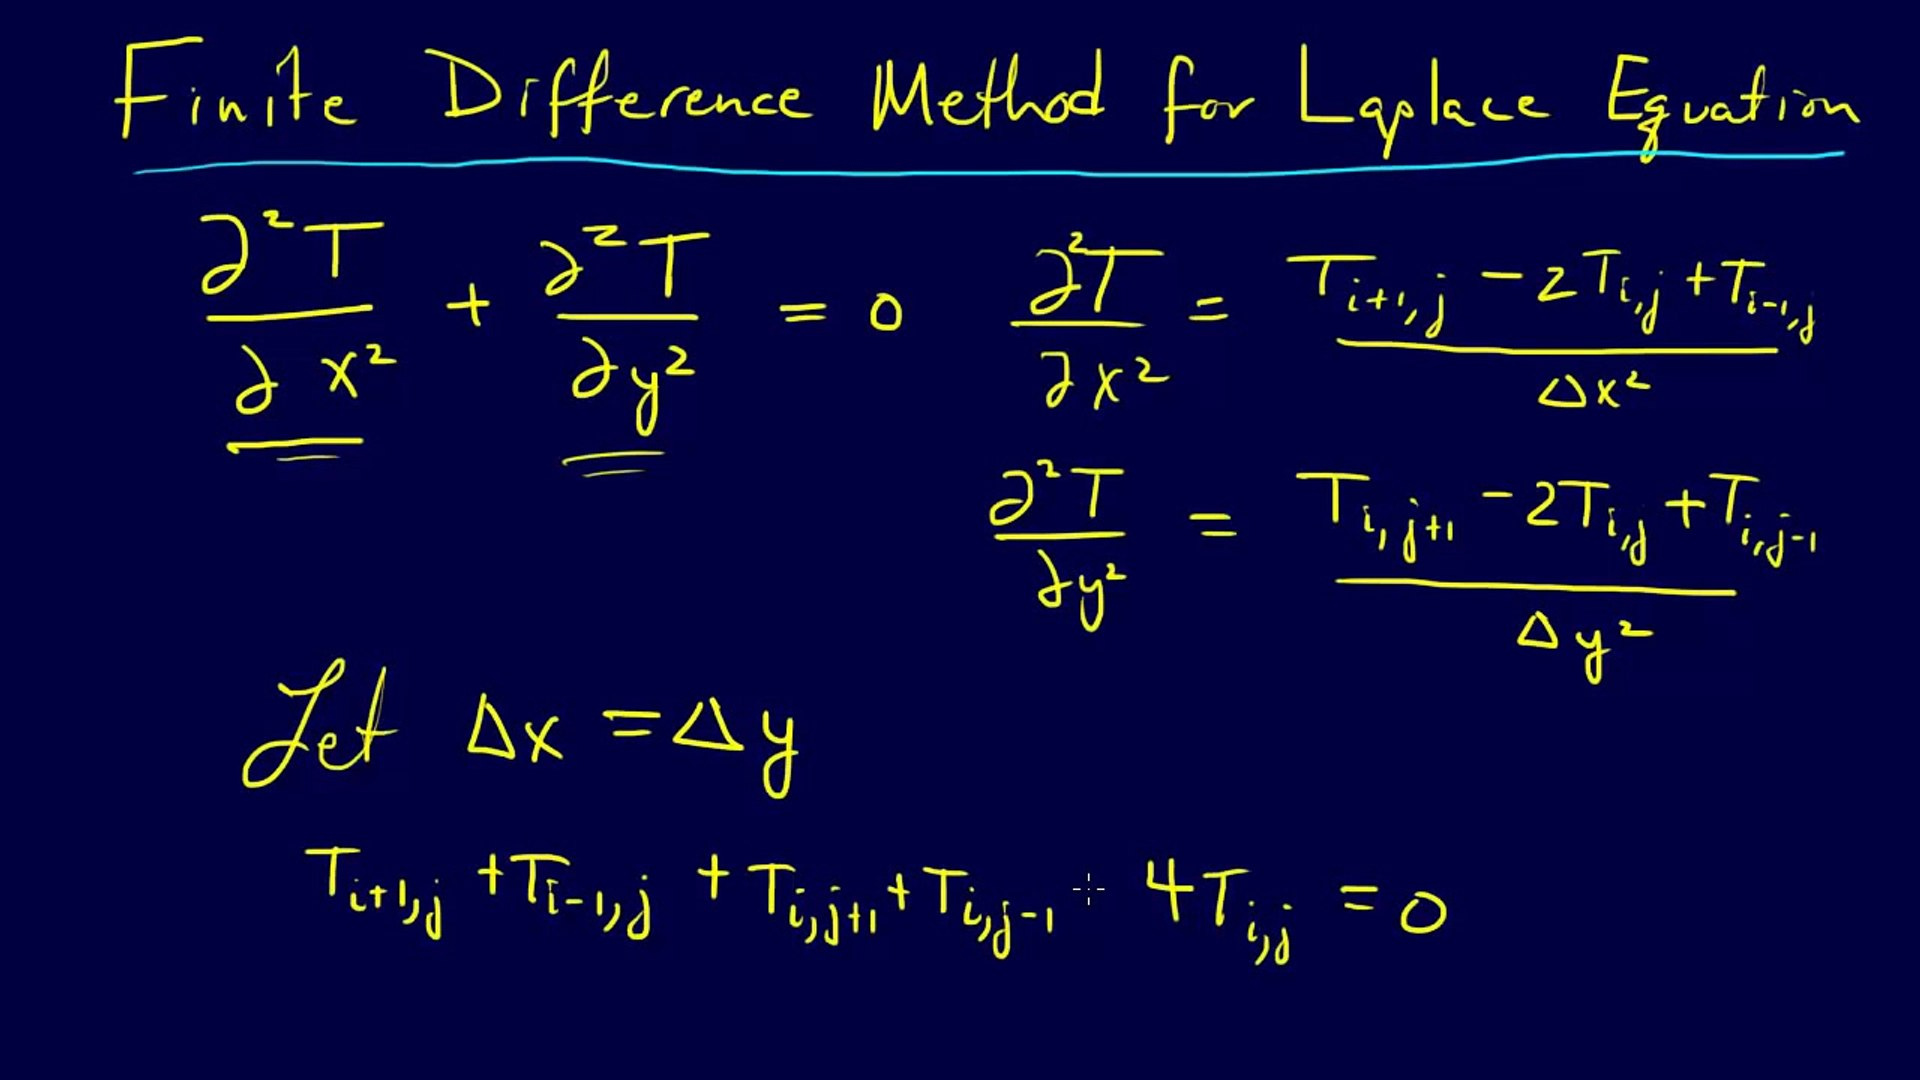 Finite difference methods in financial engineering : a partial differential equation approach /